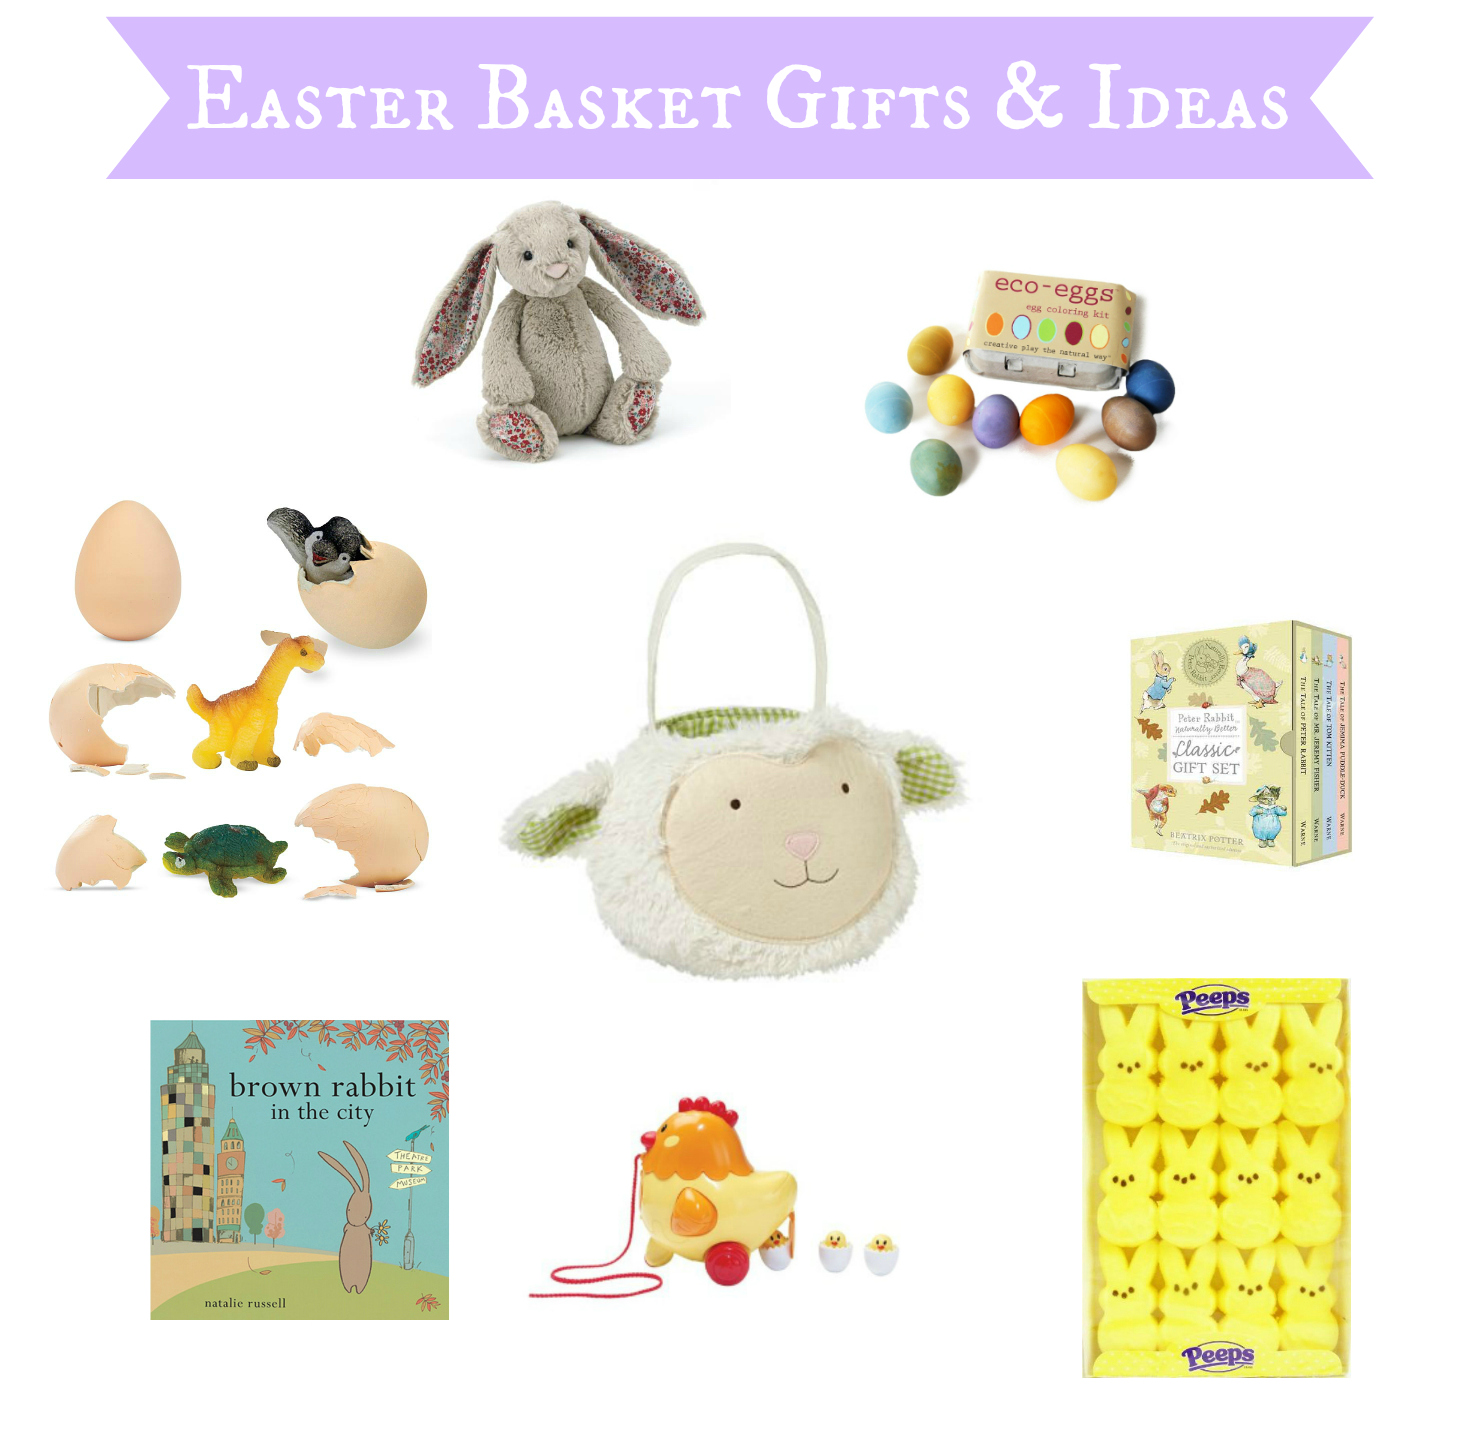 Bold easter baskets for guys savvy sassy moms time to get hopping easter basket gifts ideas negle Gallery